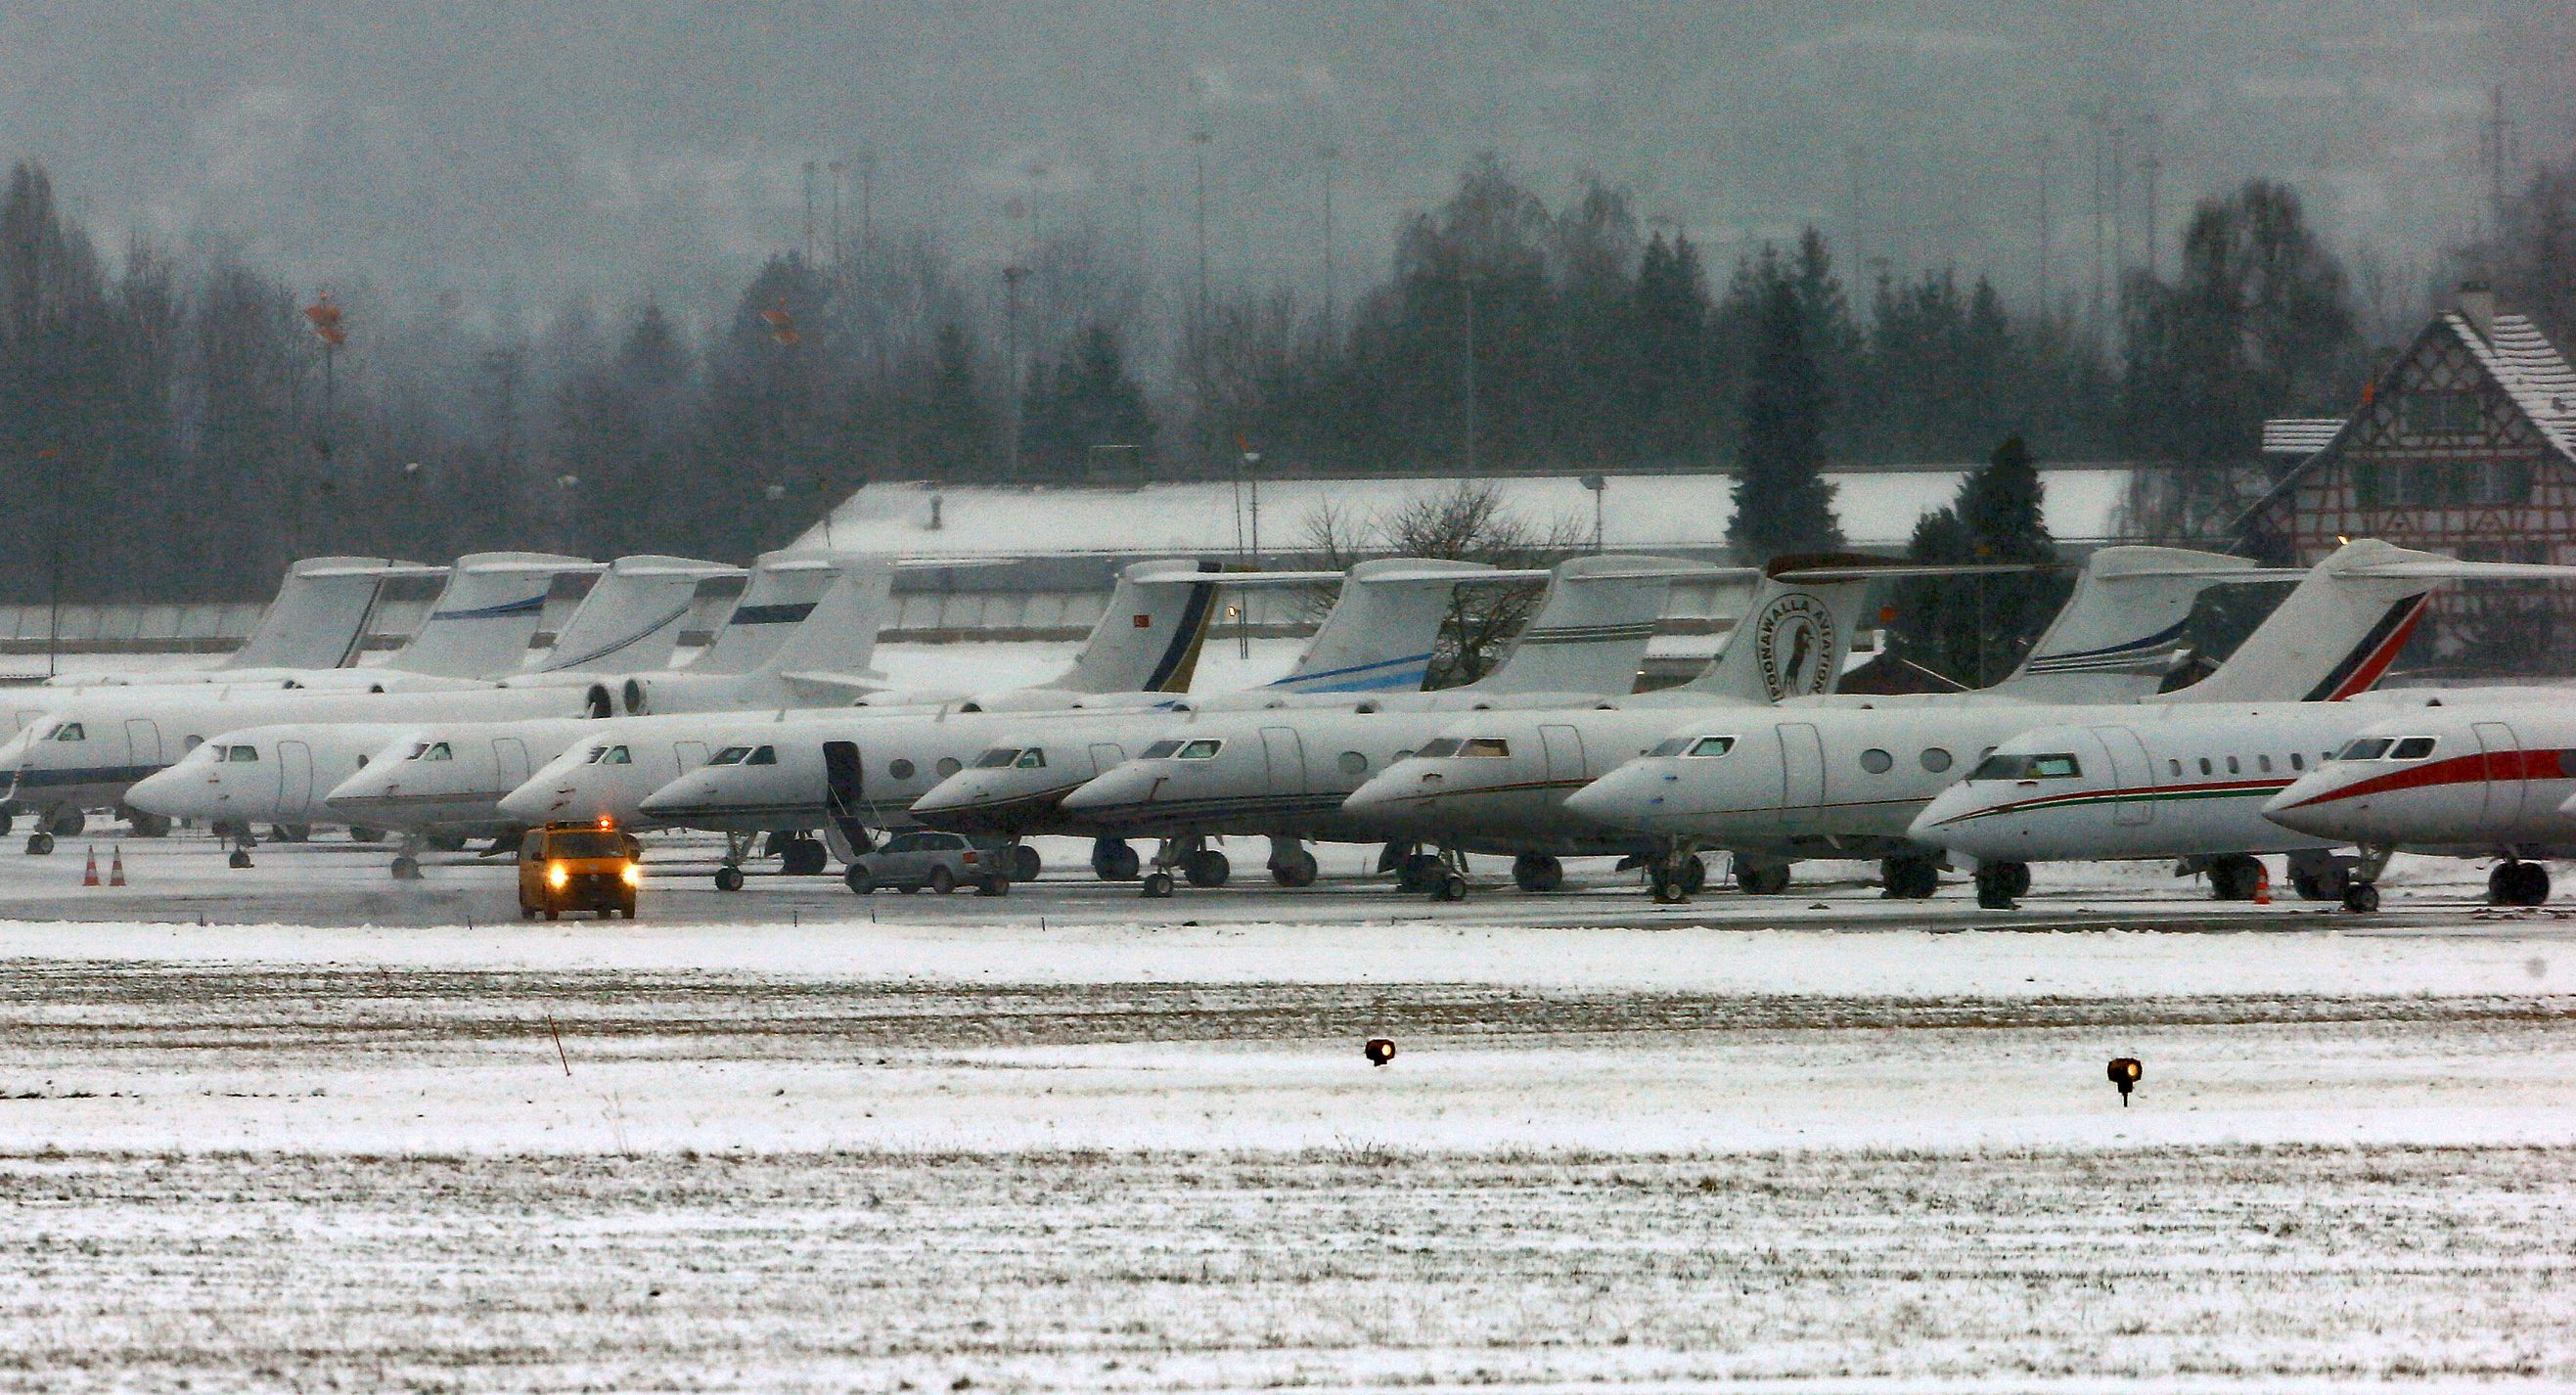 Private jets lined up for attendees to the World Economic Forum in Davos.